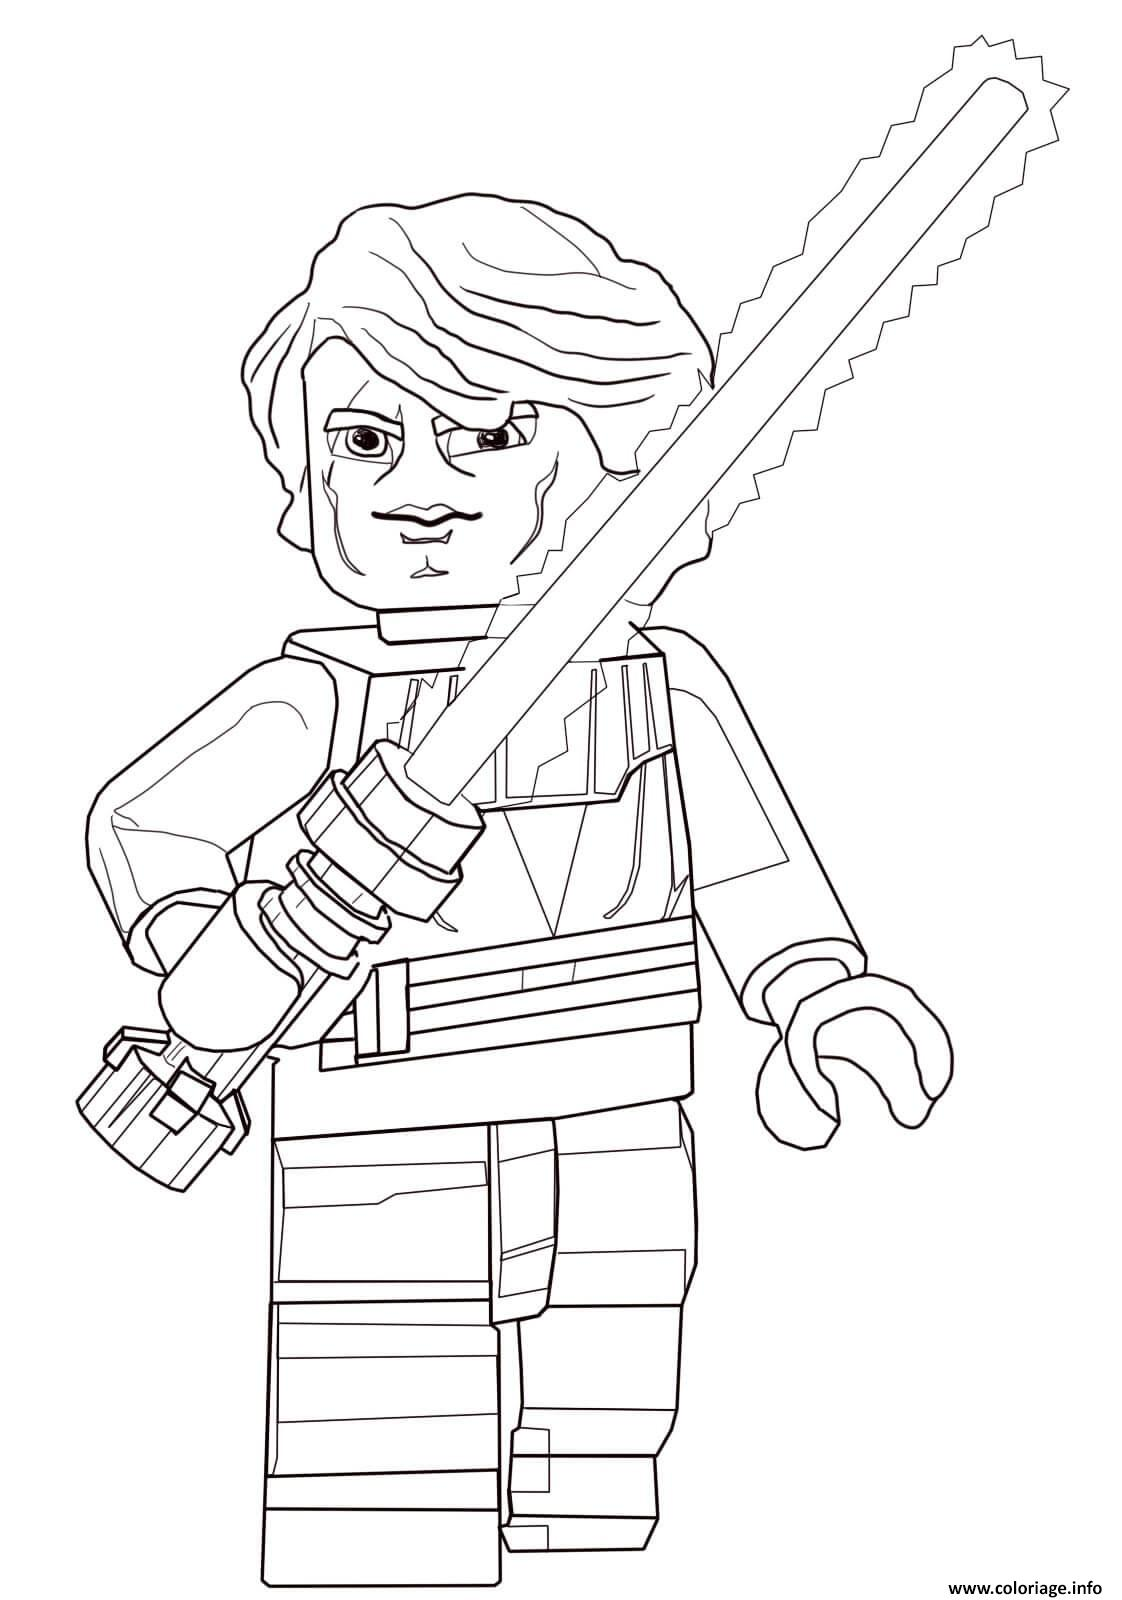 Coloriage lego star wars 77 dessin - Dessin lego star wars ...